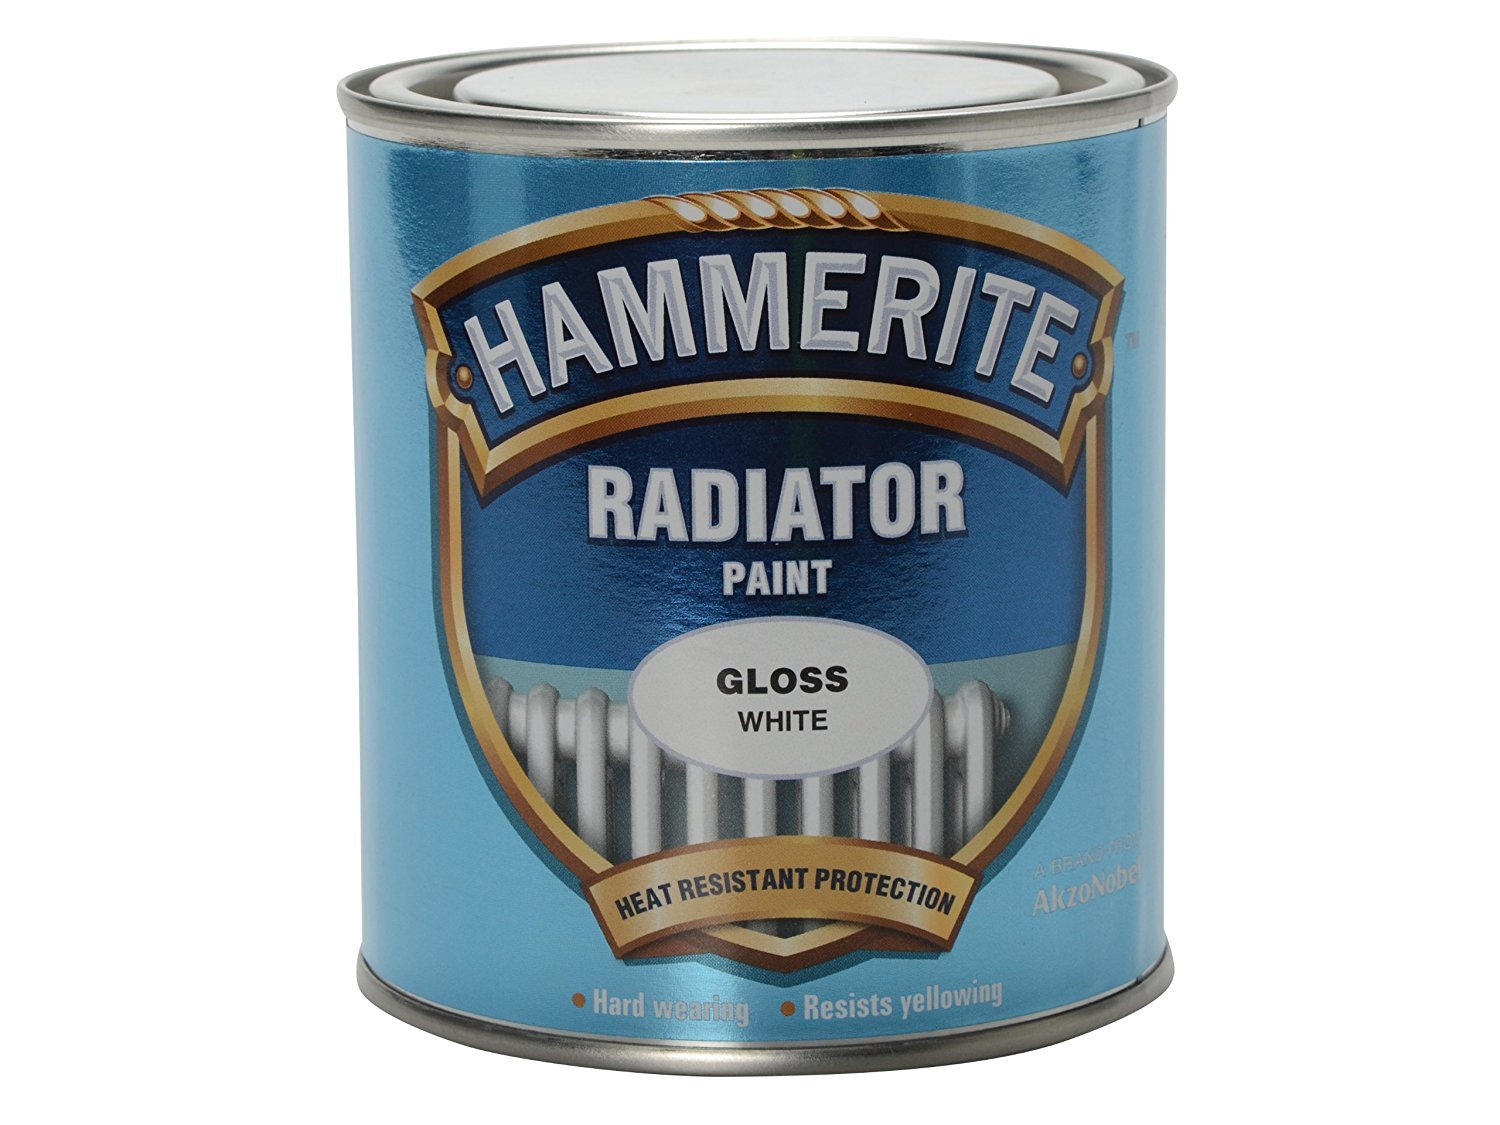 Hammerite REG500 500ml Radiator Paint - Gloss White 5092846 B001GU8C0I